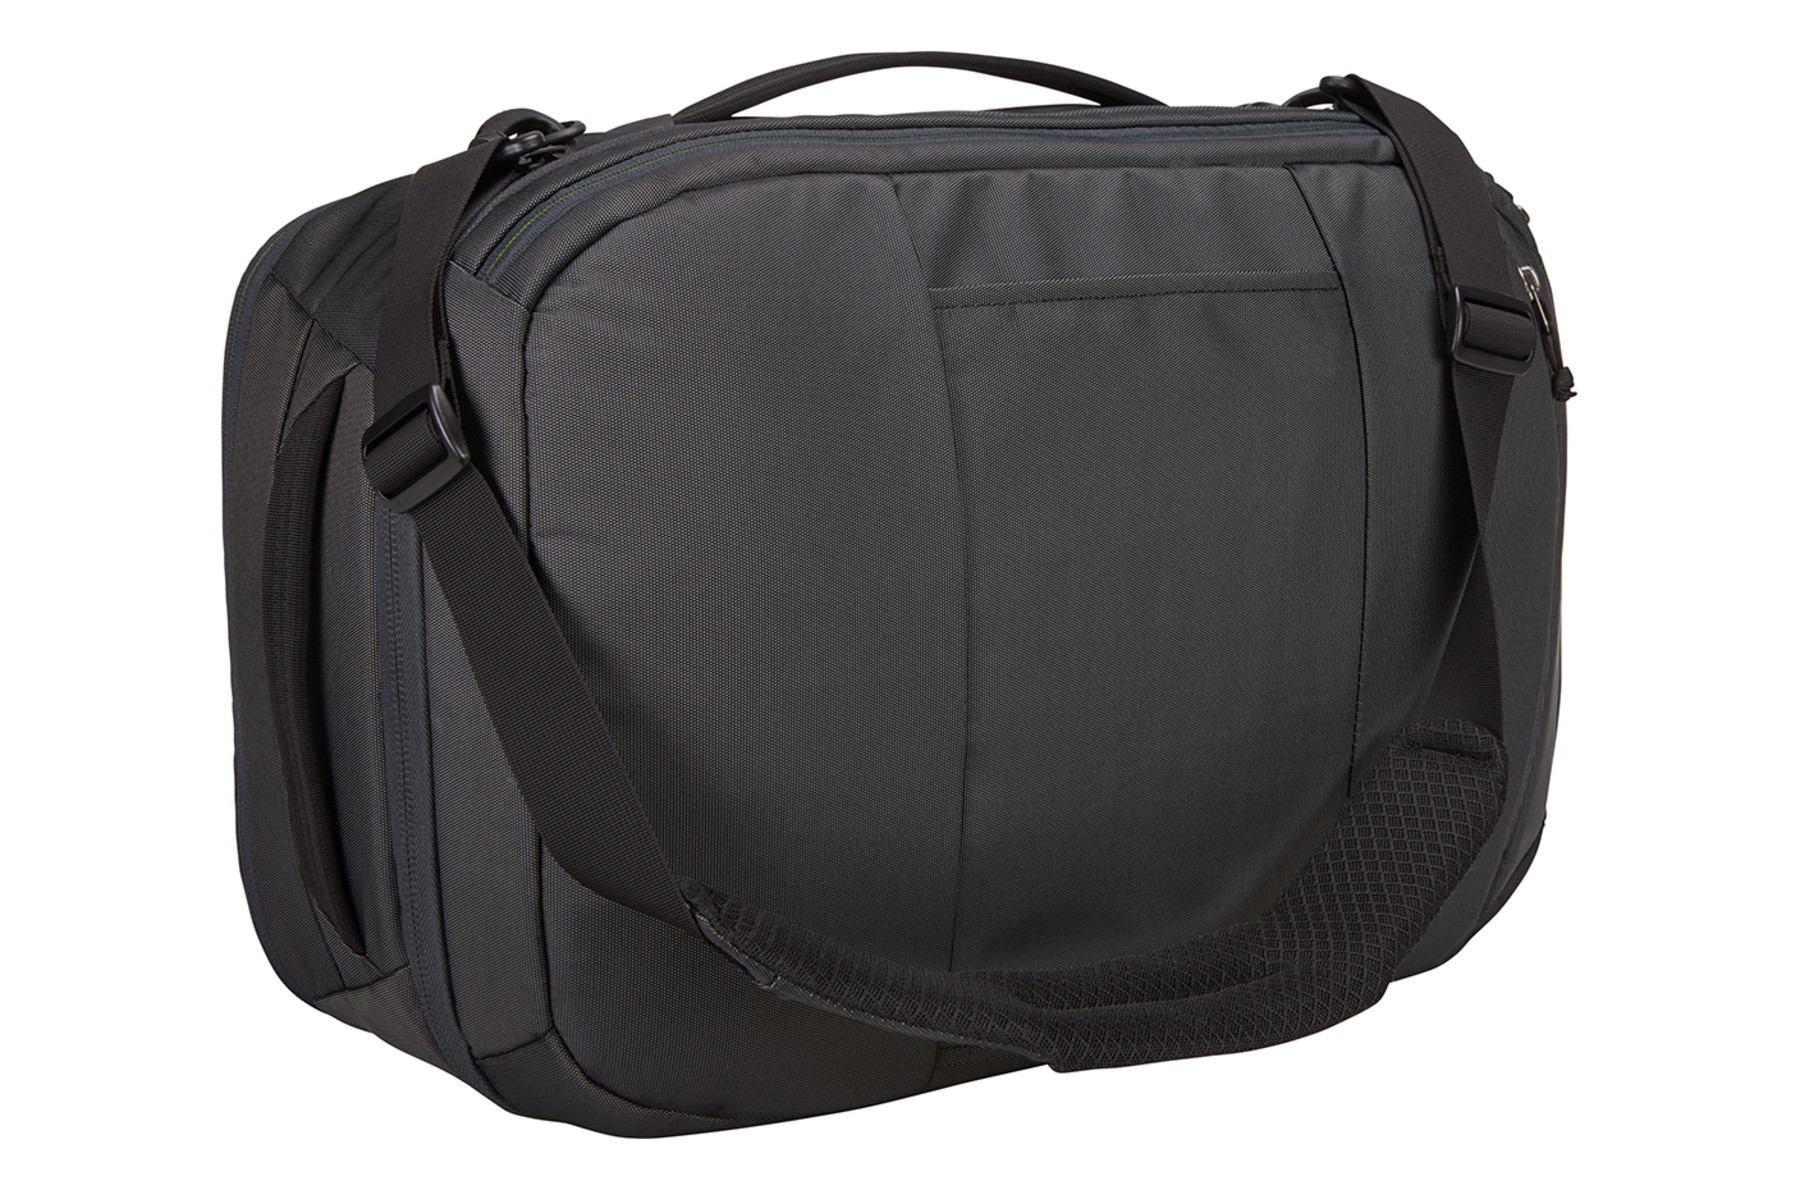 72b7c4081d05 Carry on luggage-Thule Subterra Carry-On 40L